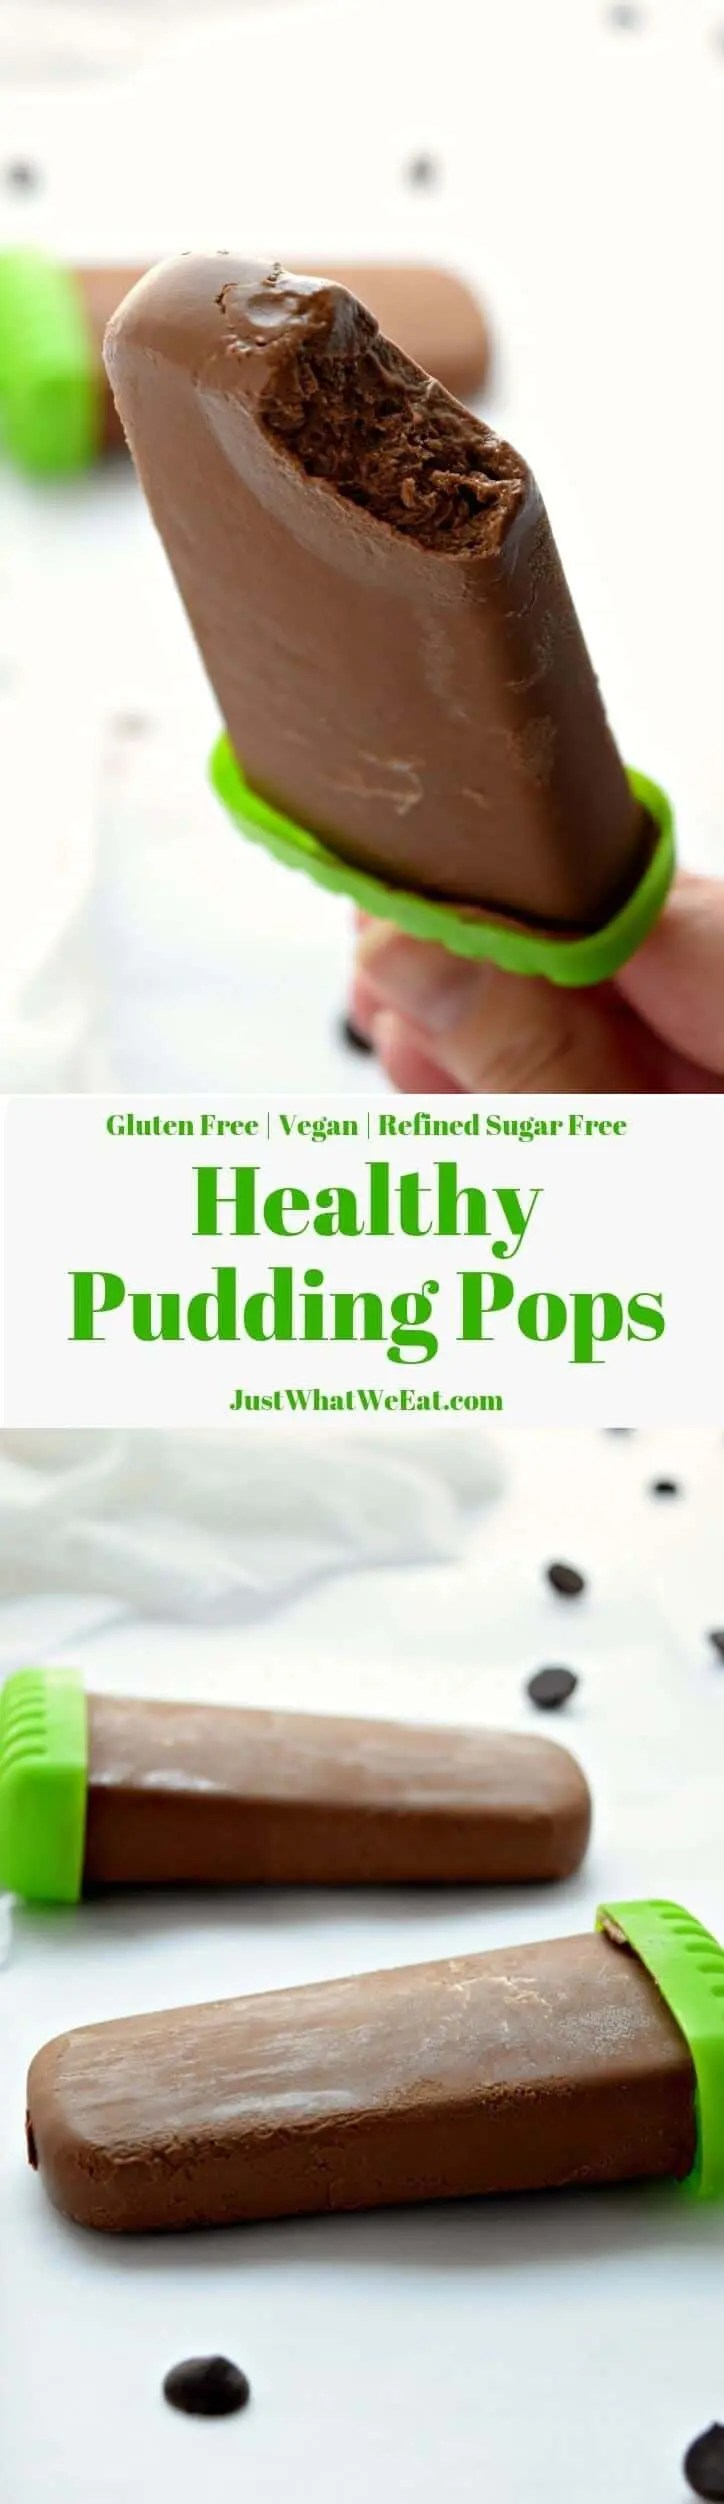 You would never know that these Healthy Pudding Pops are made with avocados! They taste just like the chocolaty pudding pops you are used to but are gluten free, vegan, and refined sugar free!